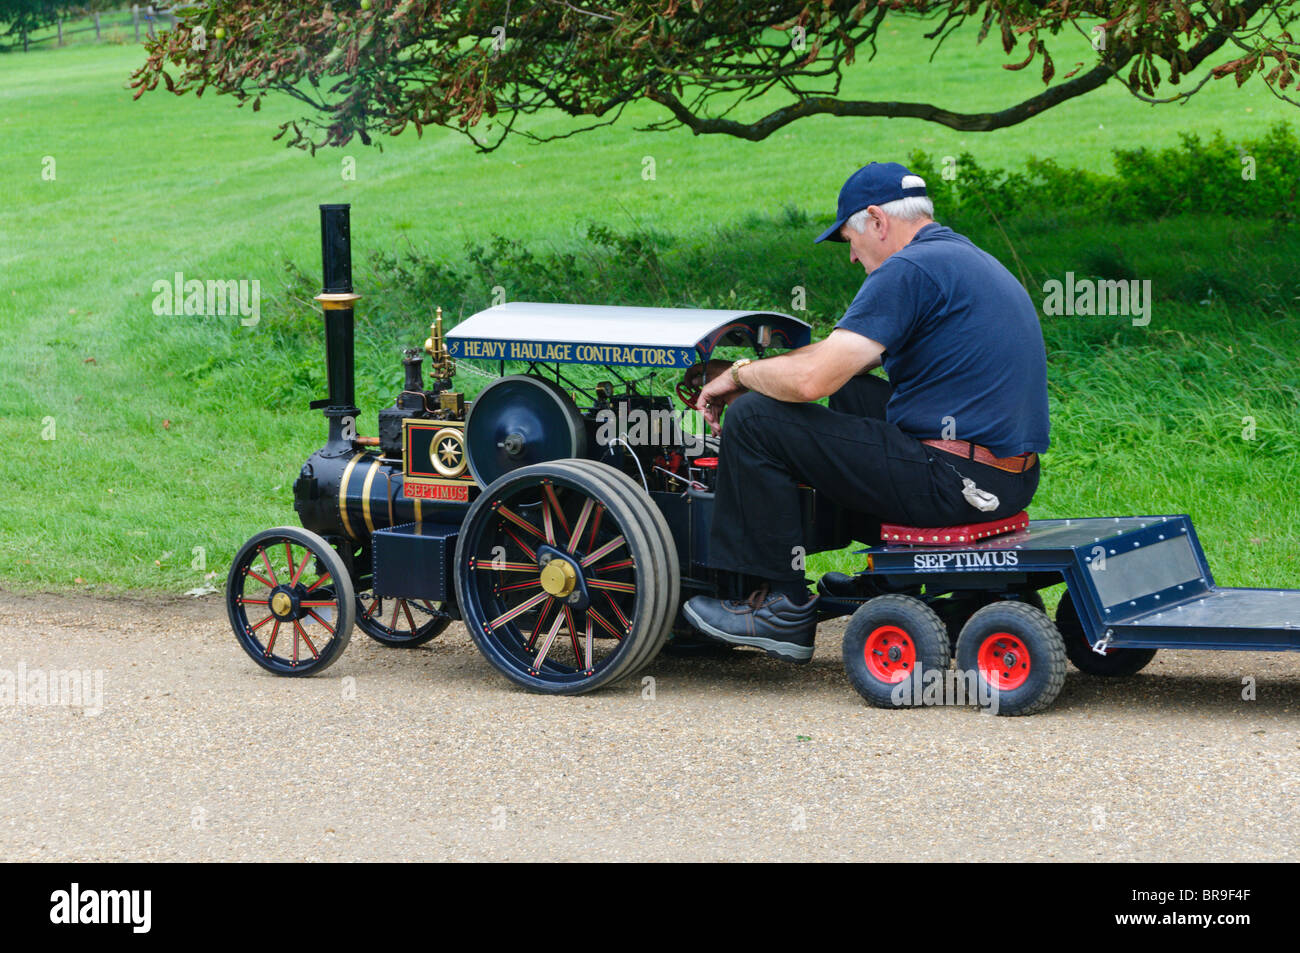 A working scale model traction engine at the Sandringham Game & Country Fair. - Stock Image